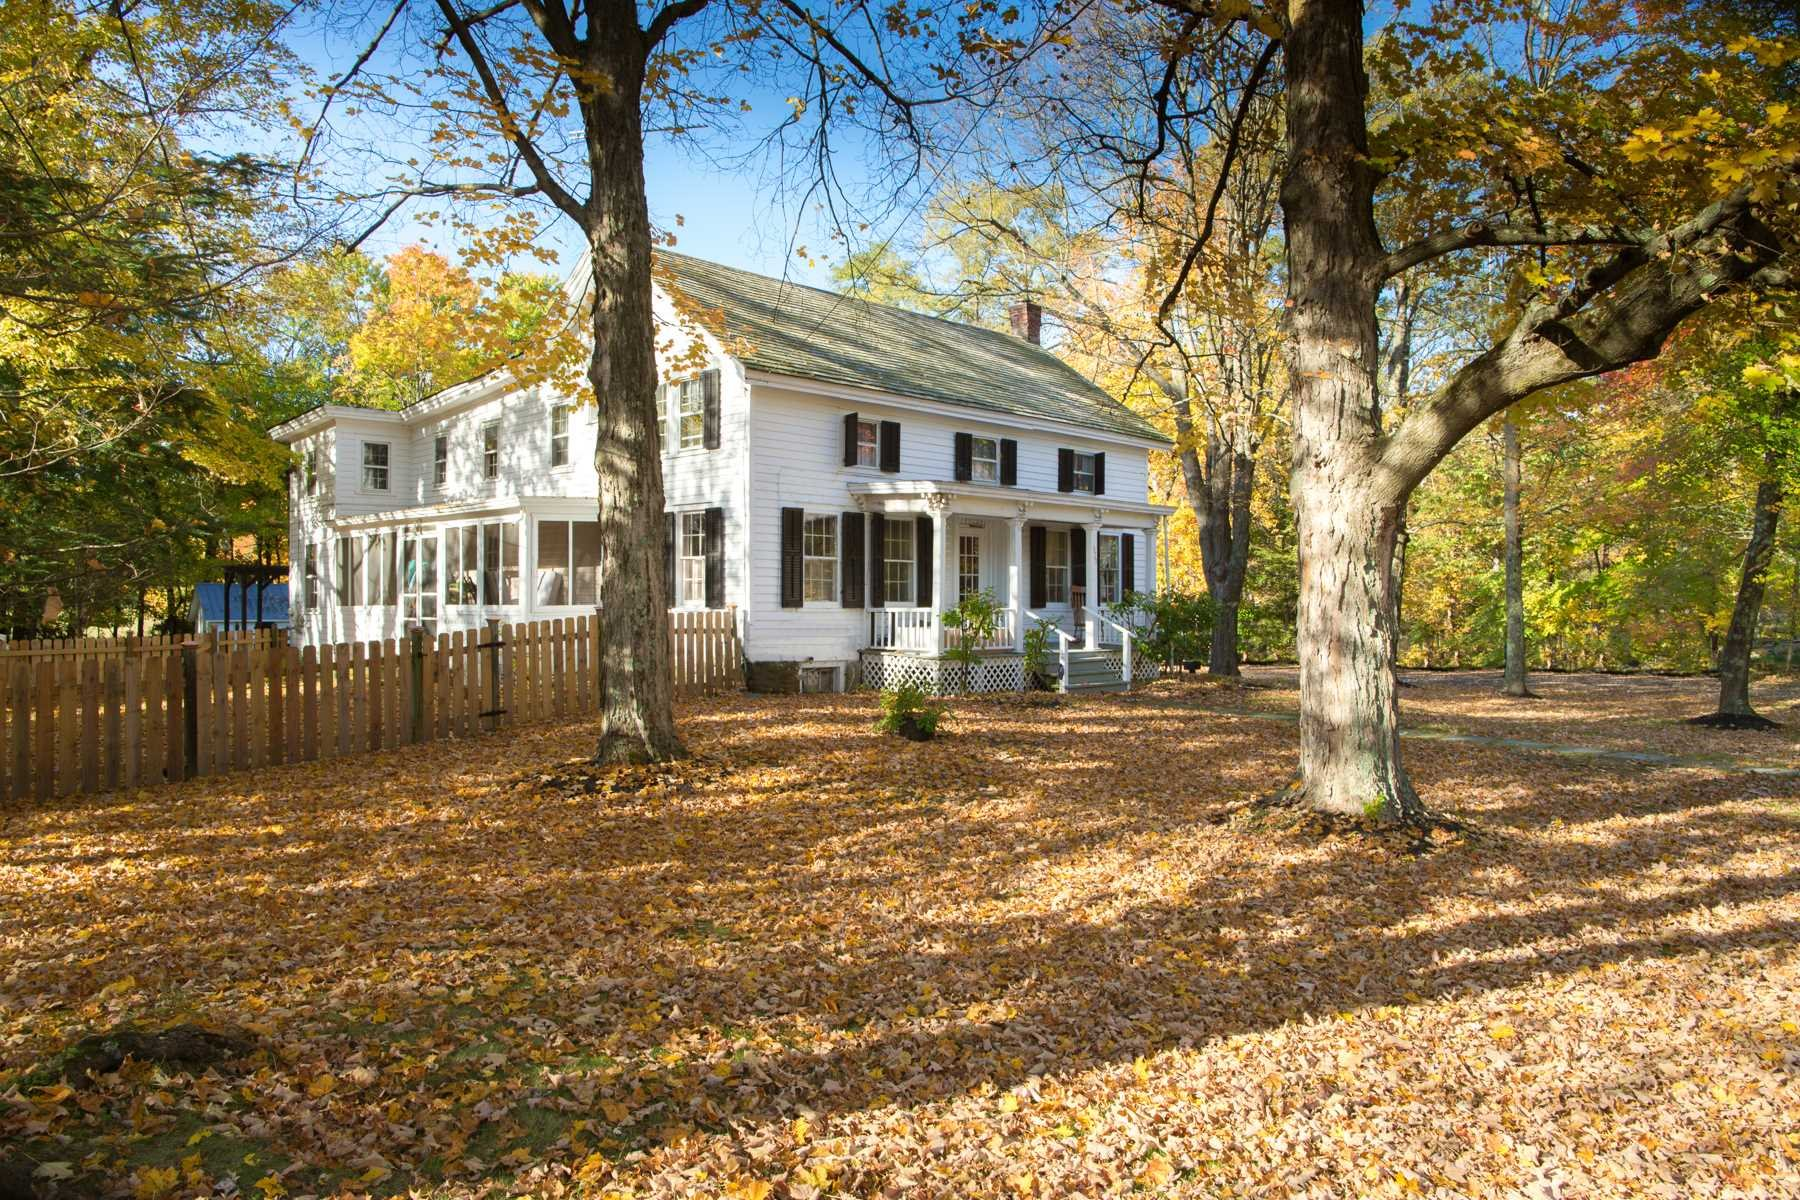 Single Family Home for Sale at 520 TURKEY HILL Road 520 TURKEY HILL Road Red Hook, New York 12571 United States